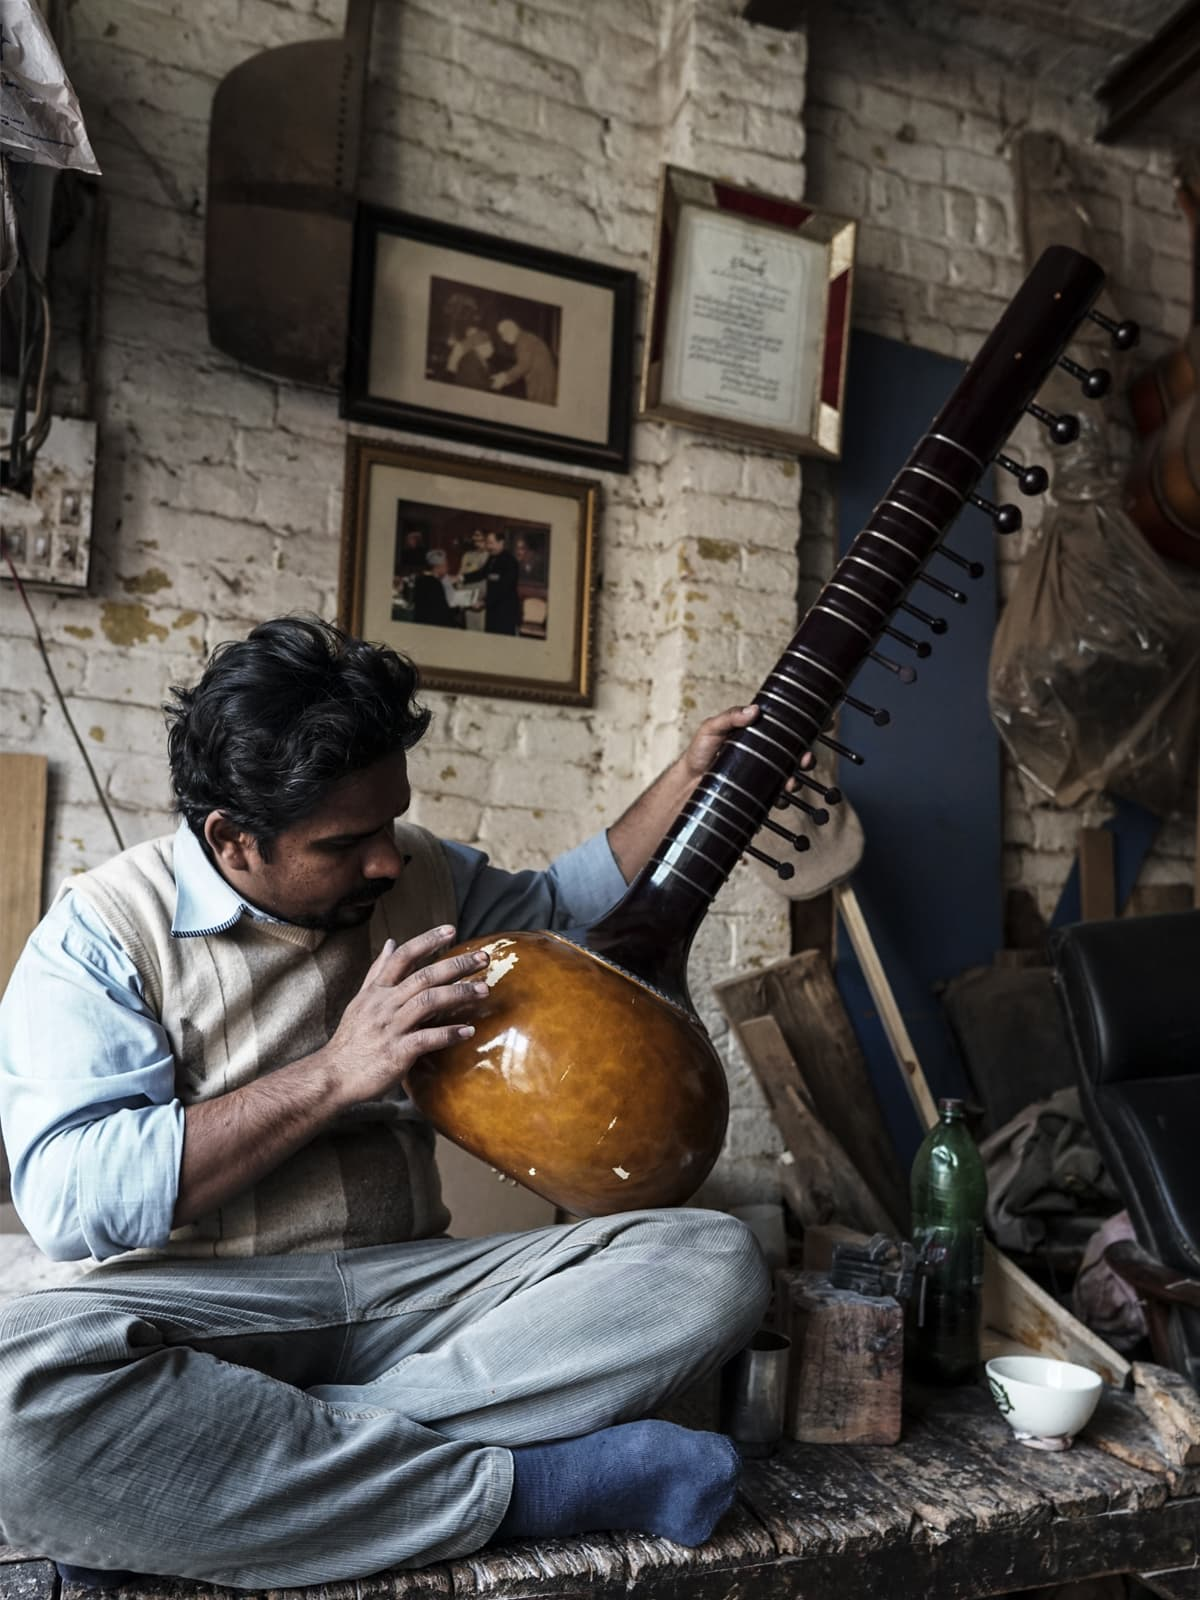 Ziauddin's son repairs the base of a sitar